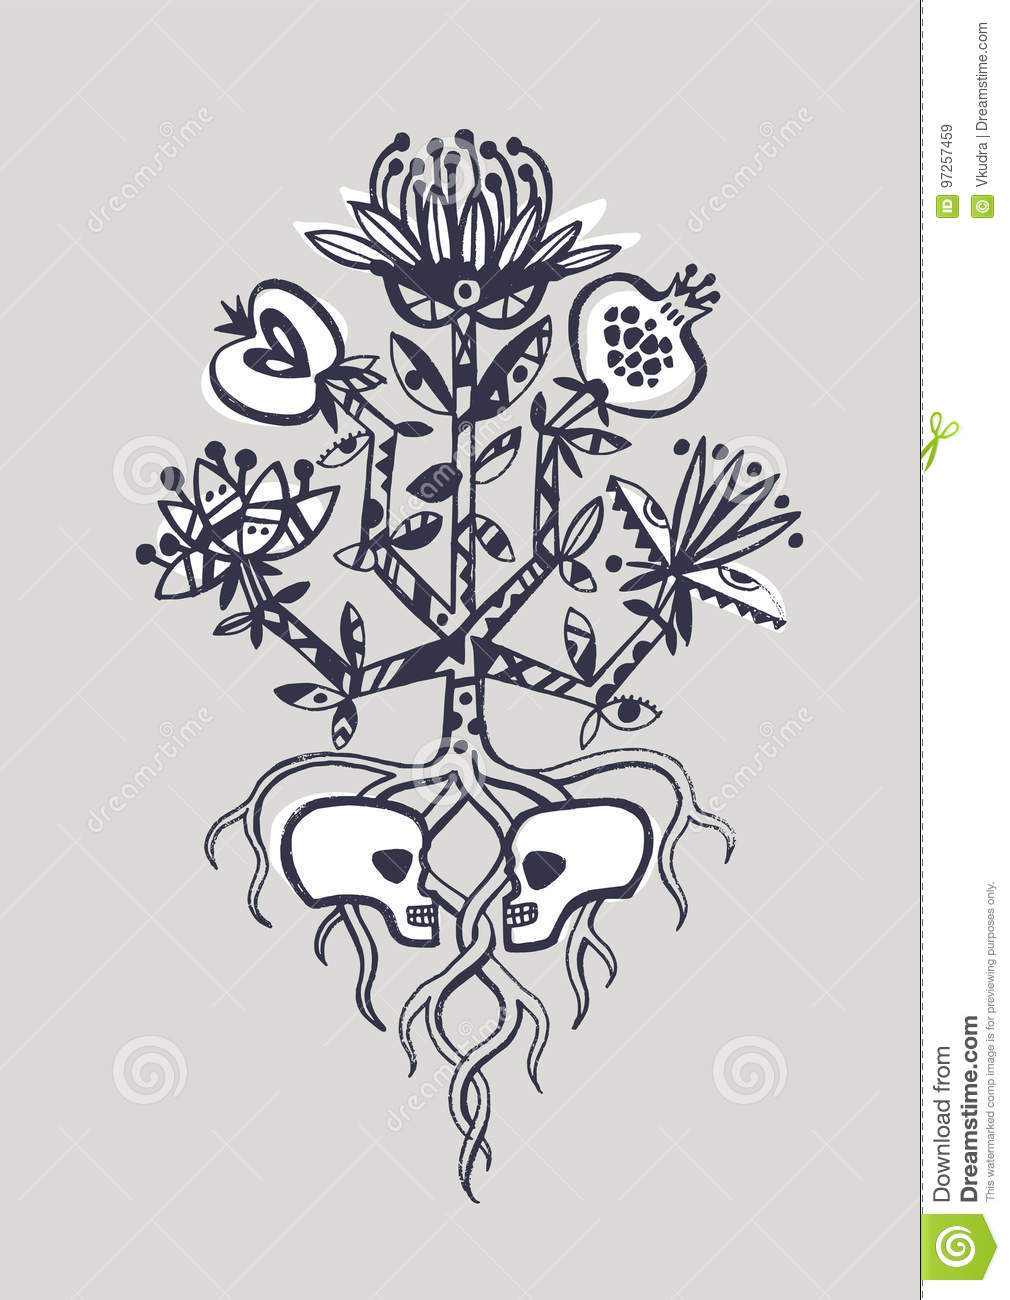 The Tree Of Life Stock Vector Illustration Of Apple 97257459